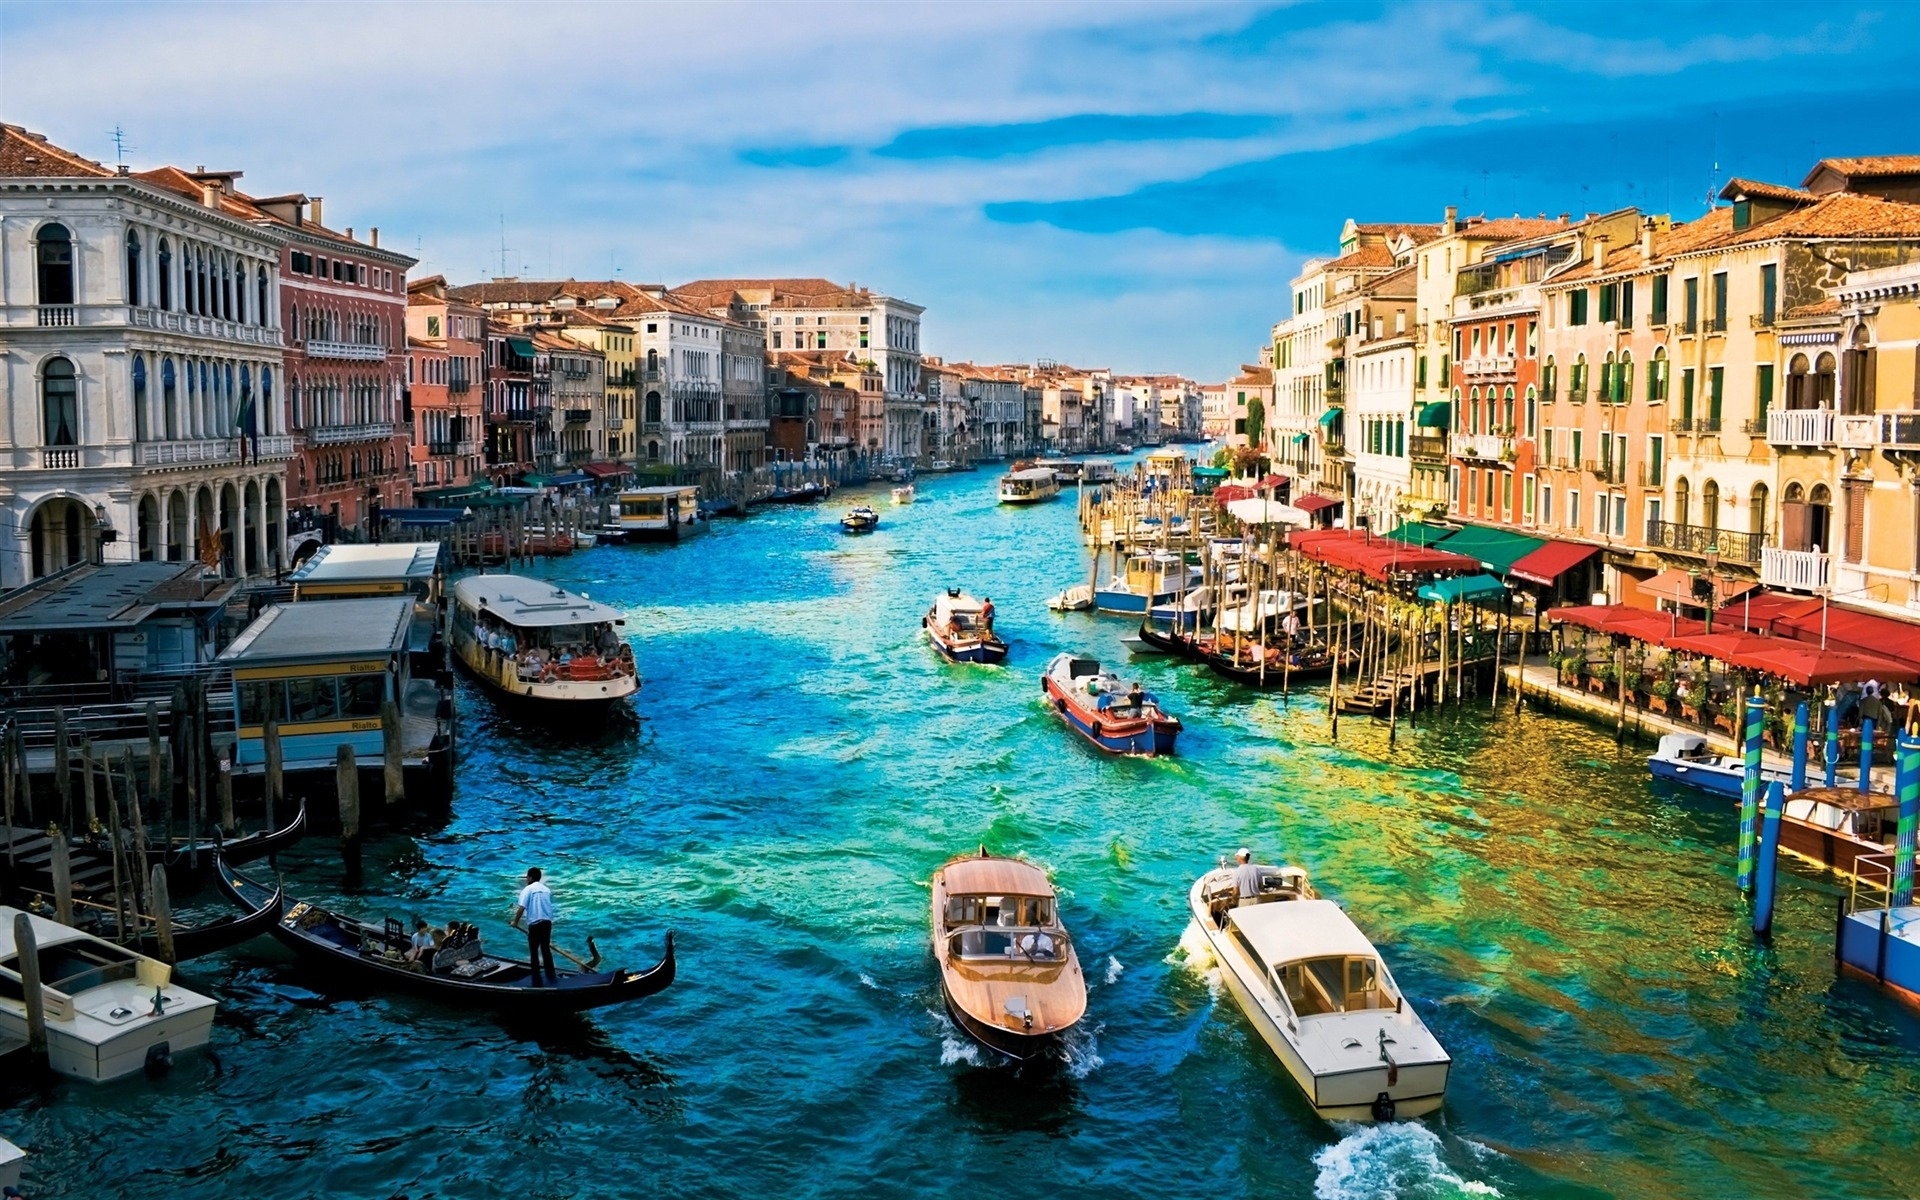 venice grand canal hd desktop 4k wllpapers free download